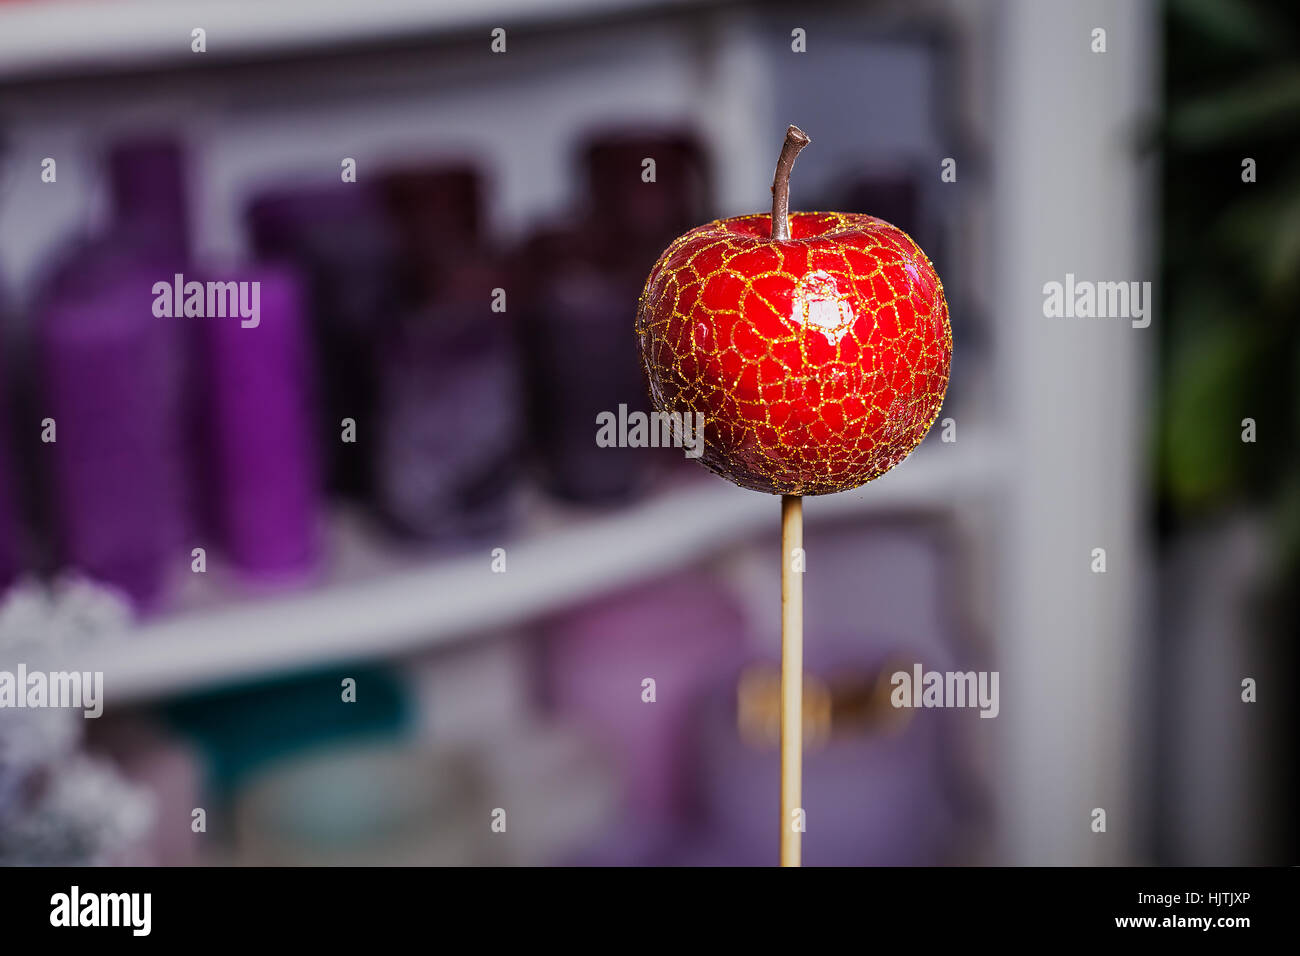 Artificial Red Apple On A Stick Home Decor Stock Photo 132078094